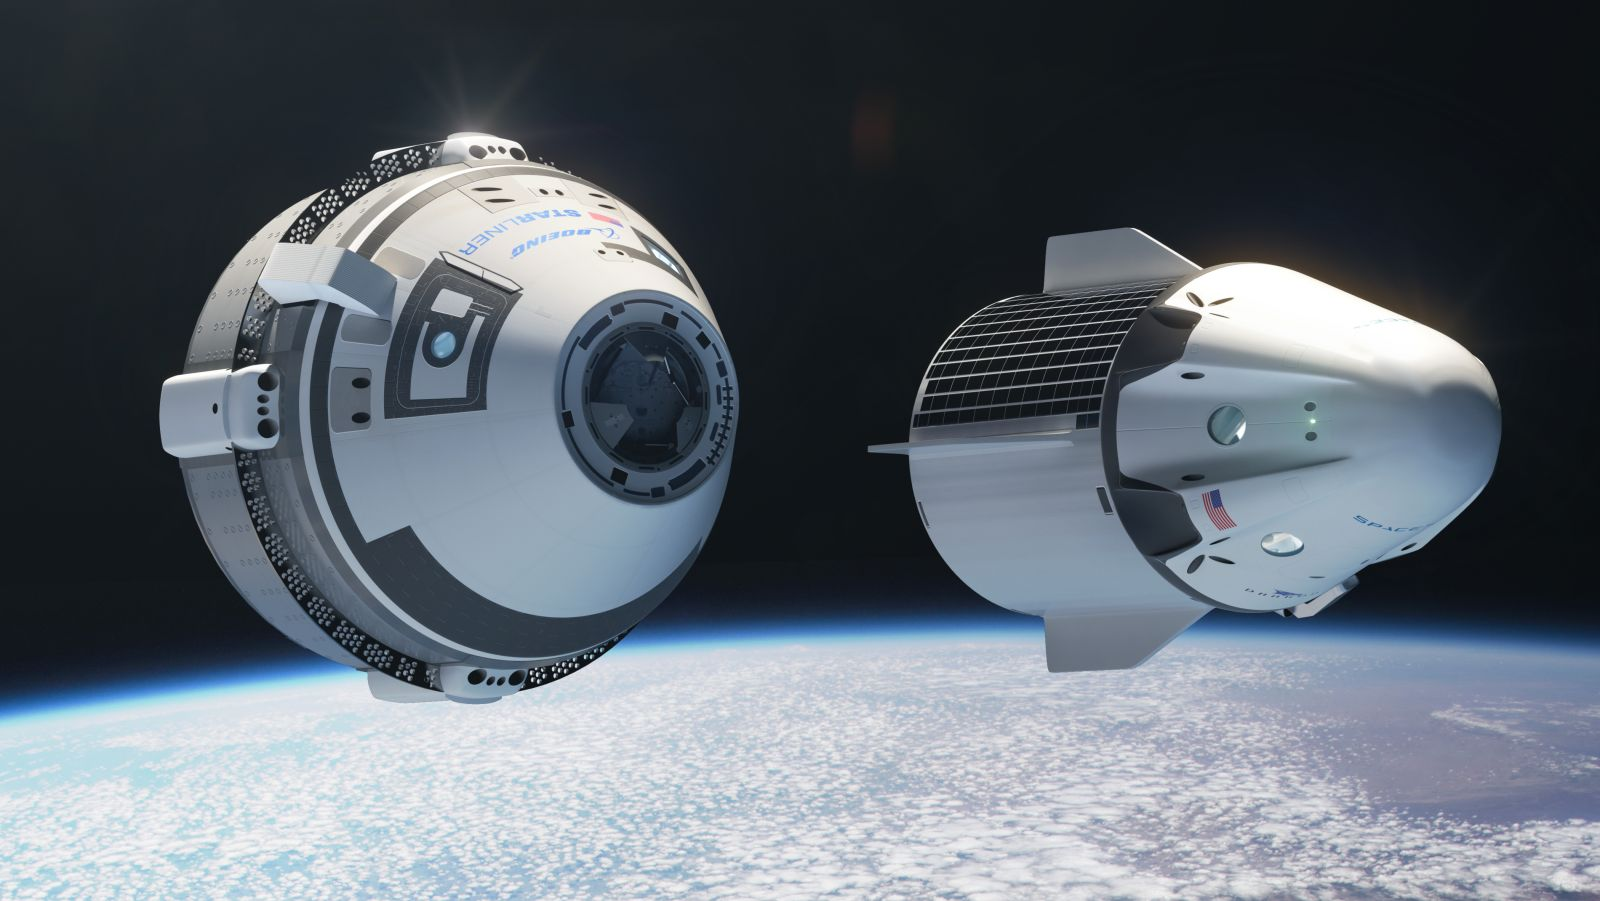 Boeing's CST-100 Starliner and SpaceX's Crew Dragon spacecraft. Image Credit: Nathan Koga / SpaceFlight Insider